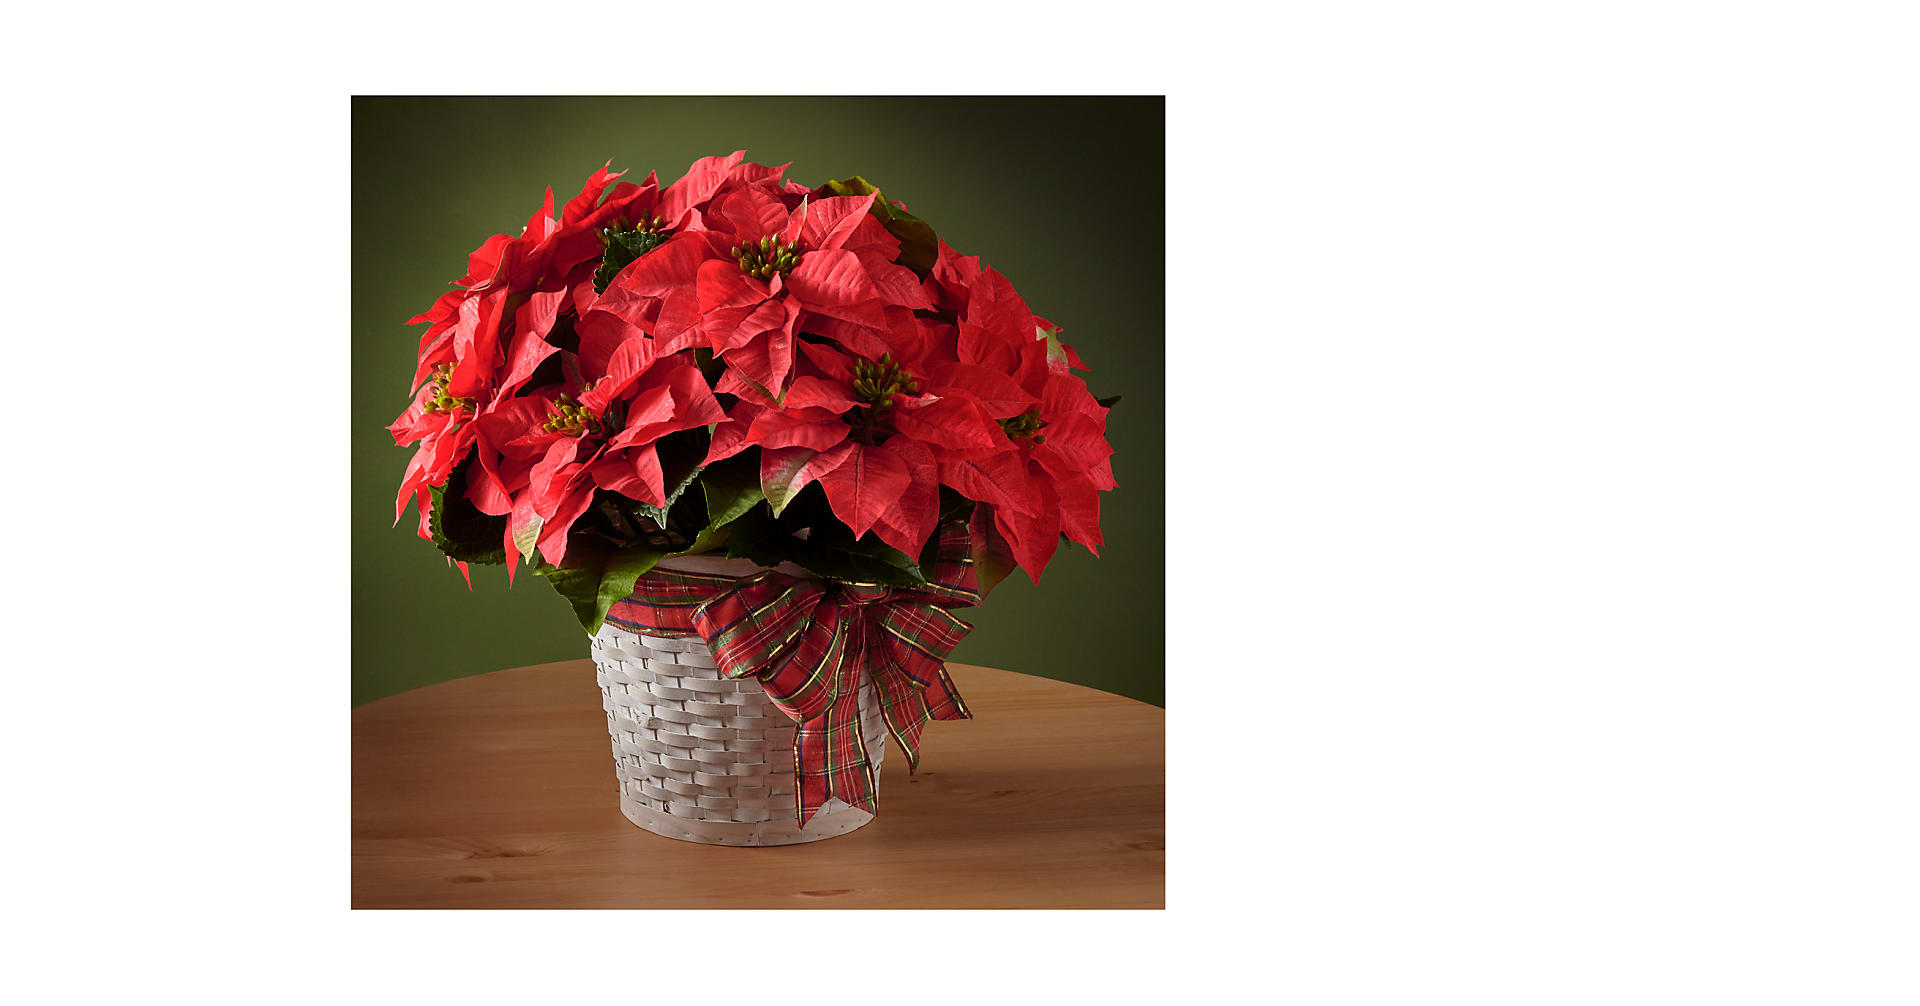 Happiest Holidays Poinsettia - Image 1 Of 2